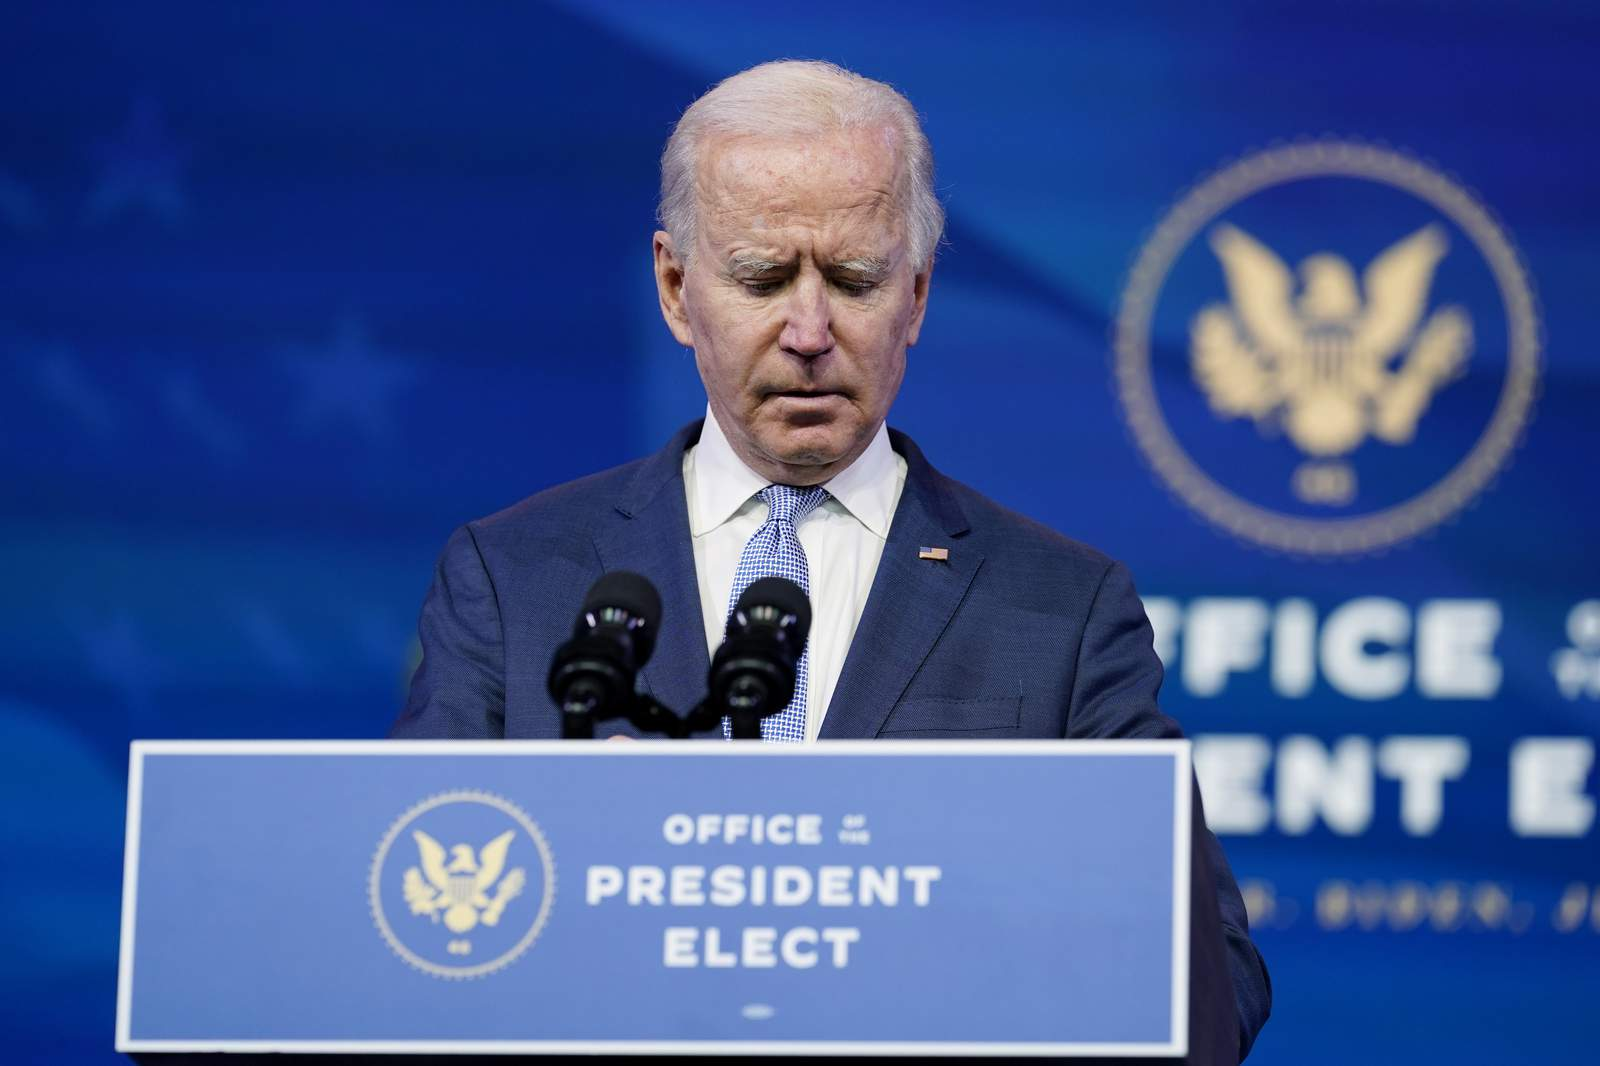 Capitol attack: Congress certifies Joe Biden's victory after deadly violence